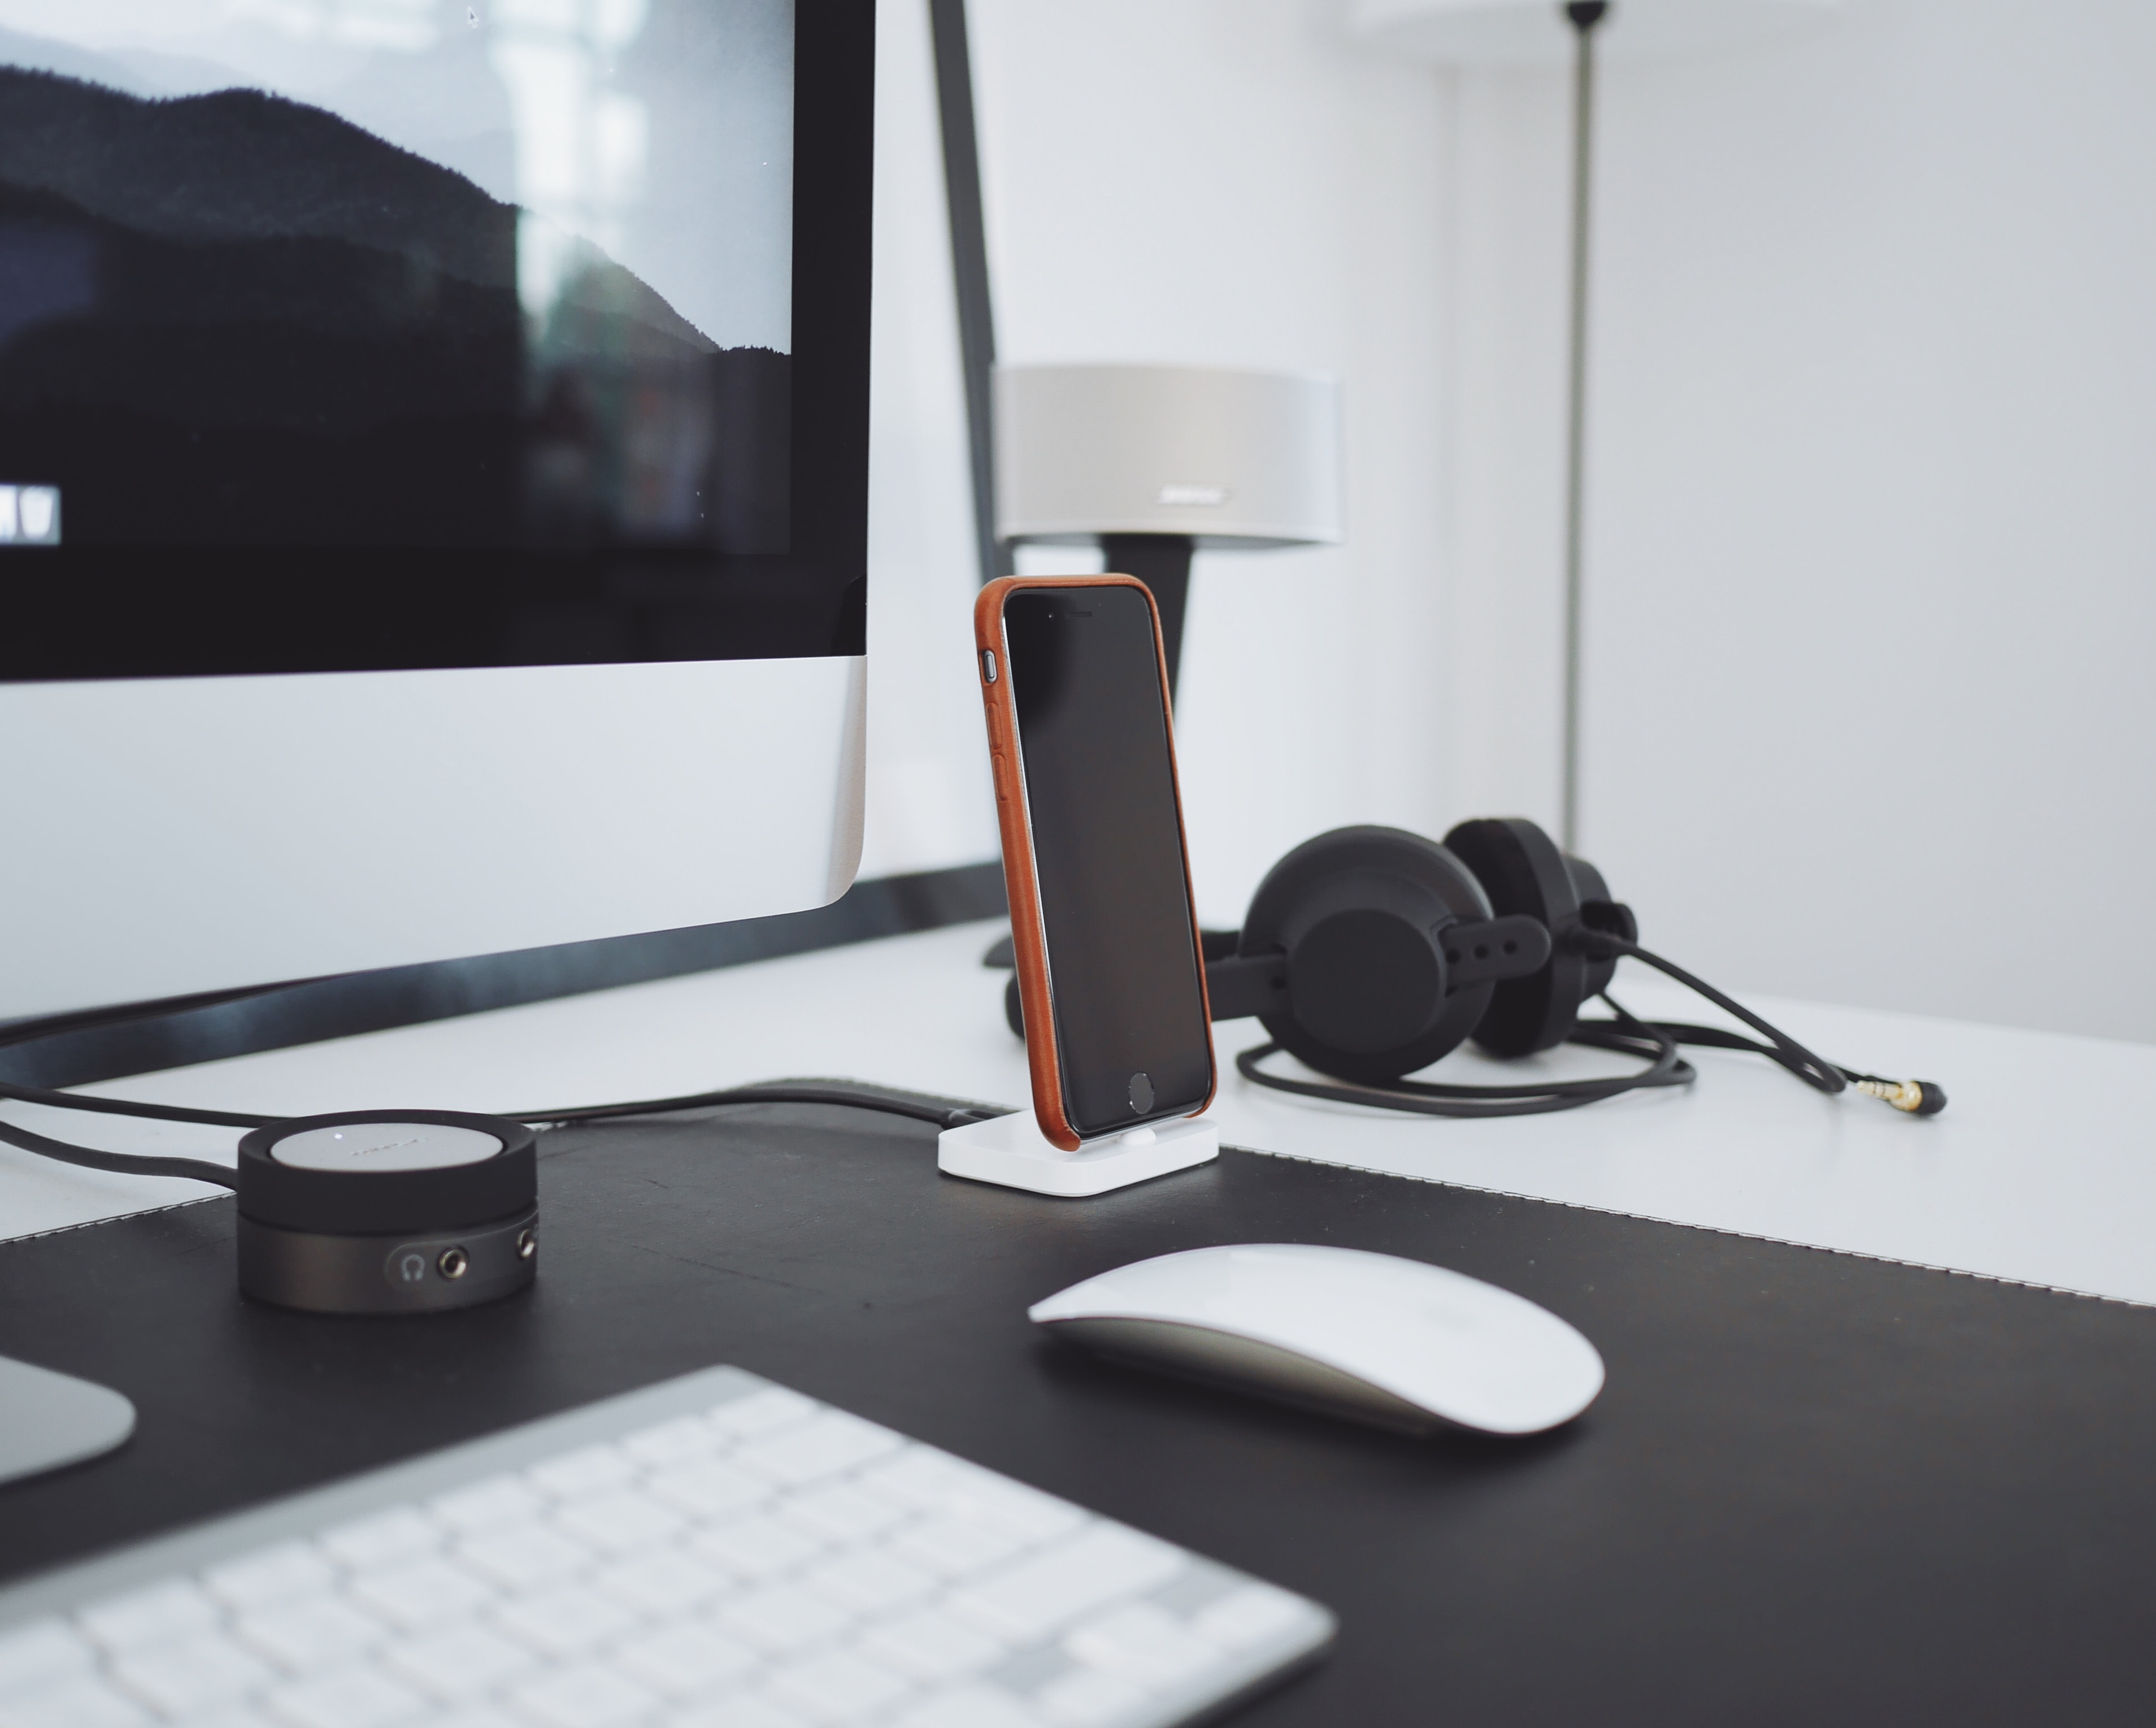 An iPhone near a pair of headphones and a small speaker on a computer desk